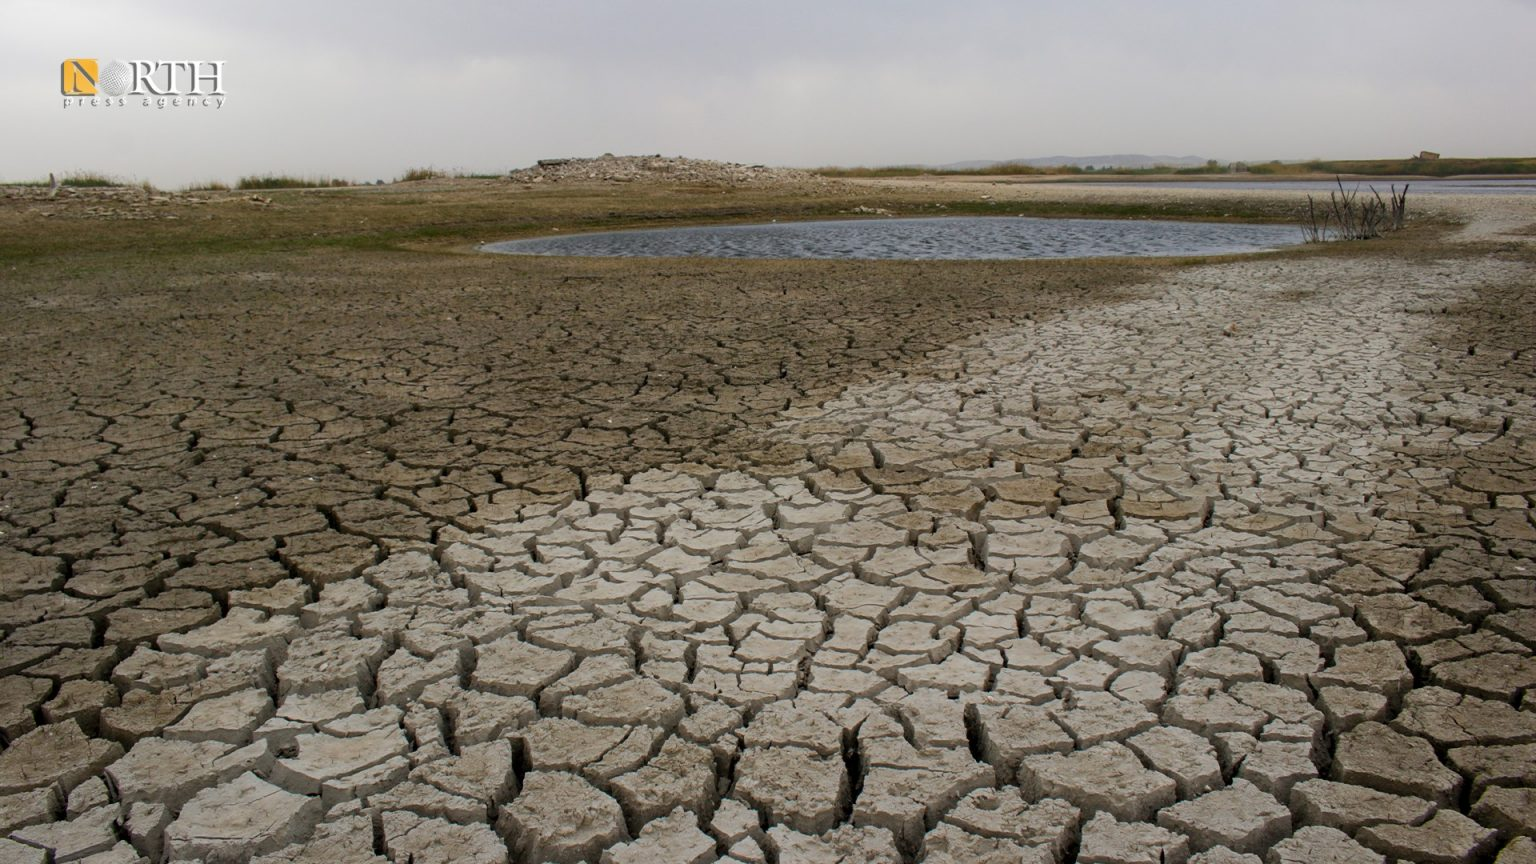 Scenes of declining water levels in the Euphrates River - North Press - Archive